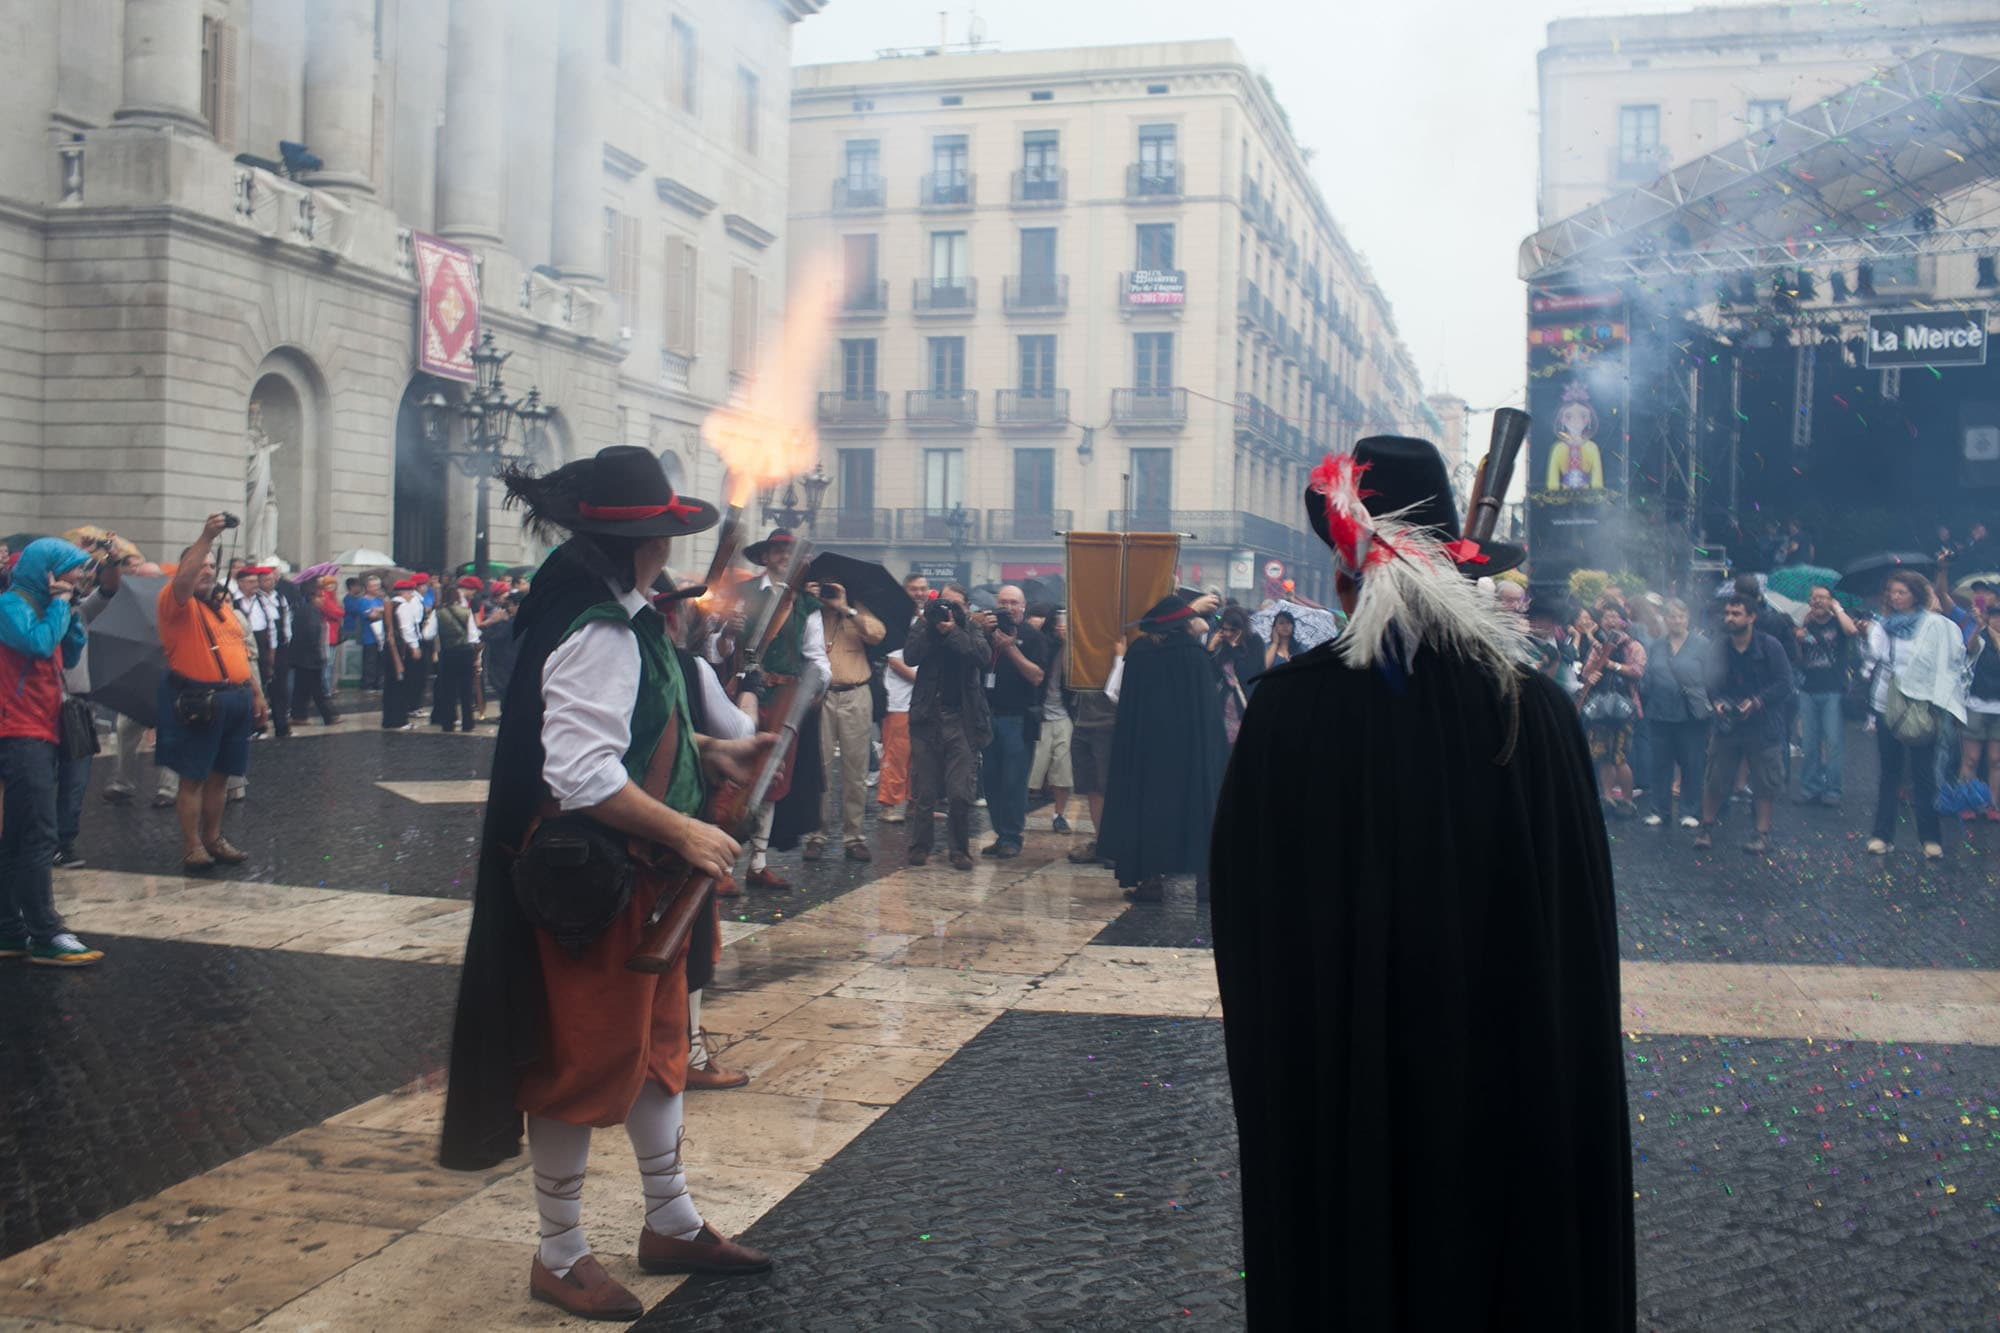 Gunshots wake up the square at La Mercè Festival in Barcelona, Spain